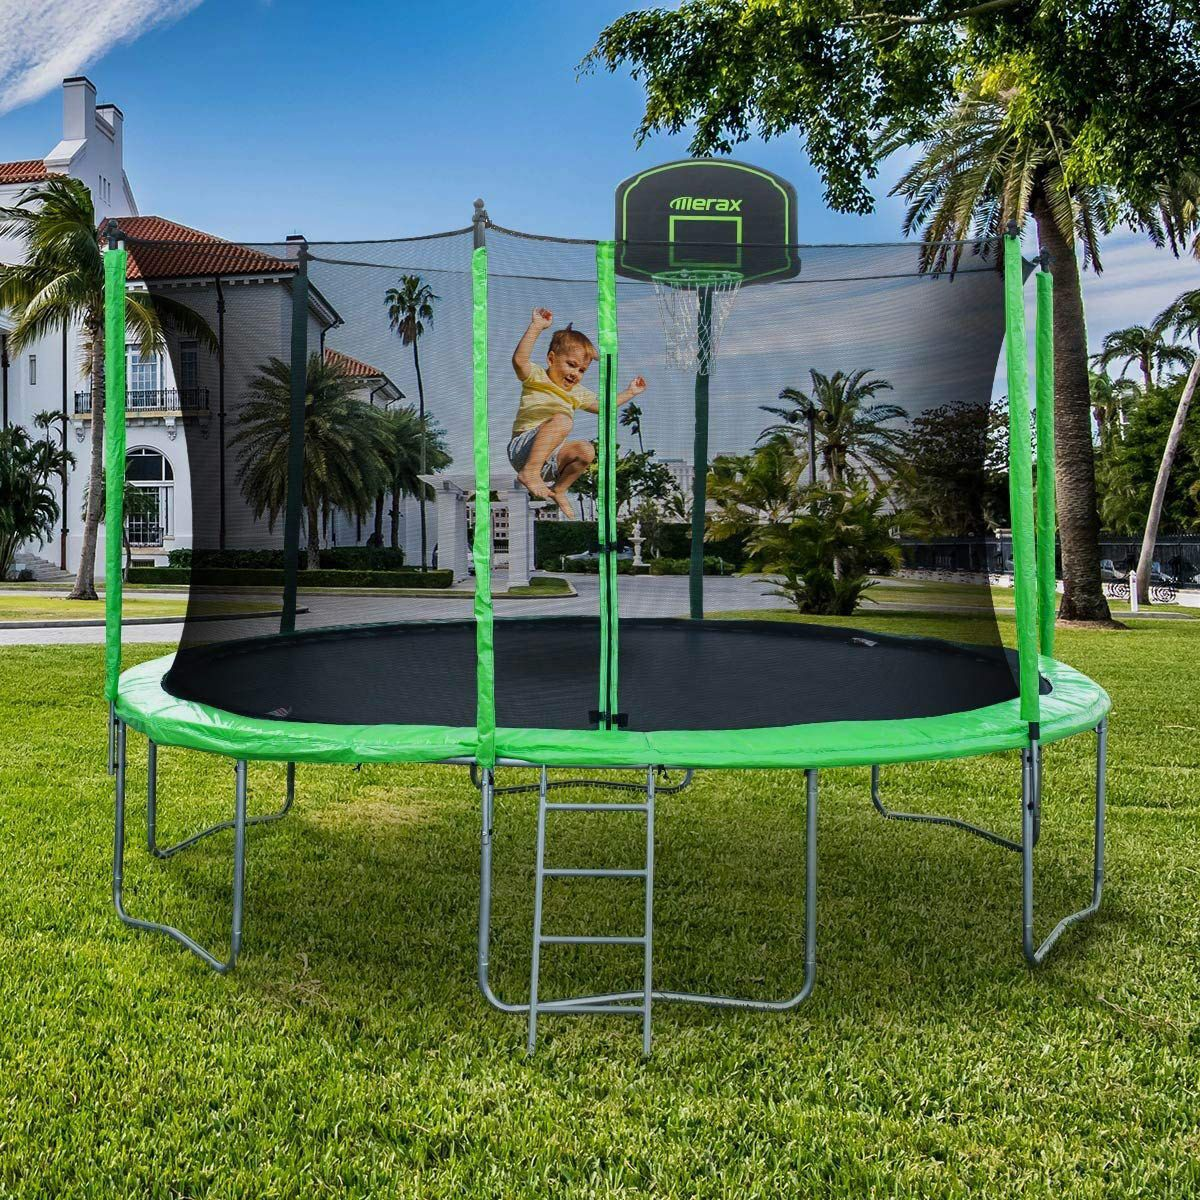 Merax 12-Feet Round Trampoline With Safety Enclosure, Basketball Hoop, and  Ladder - The 10 Best Trampolines 2018